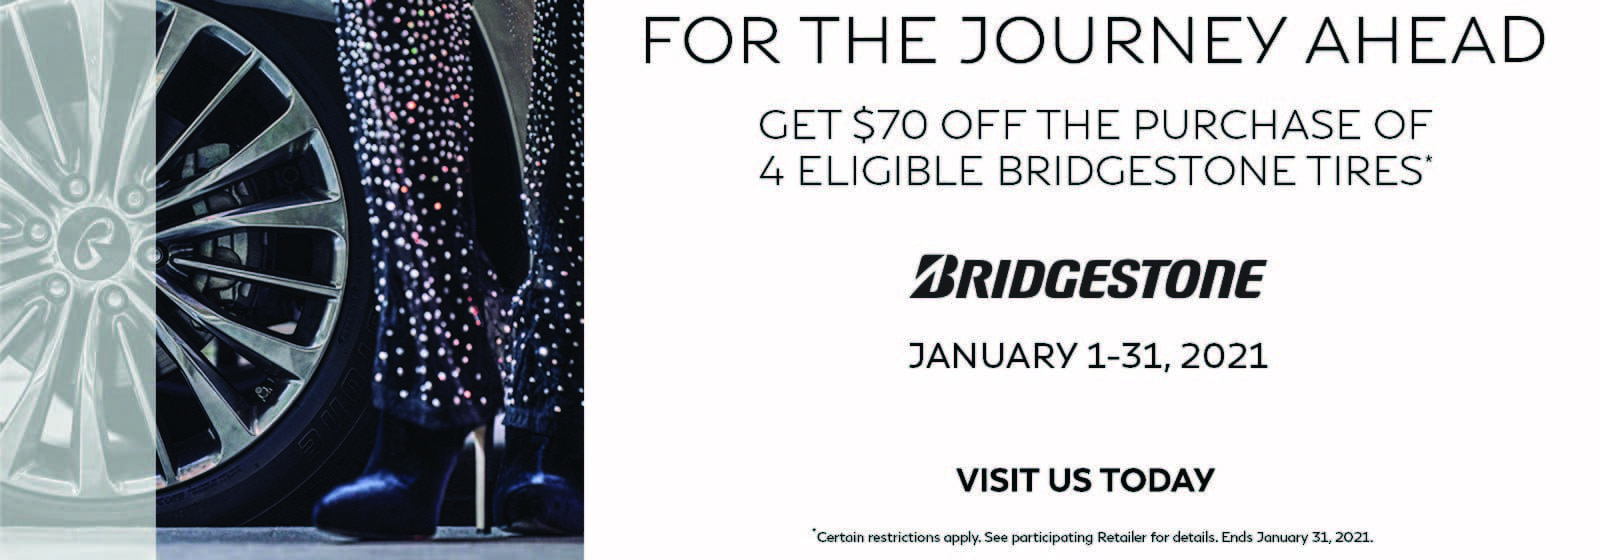 Person standing next to tire. Get $70 off the purchase of 4 eligible Bridgestone tires. January 1-31, 2021. Restrictions apply. See retailer for details.